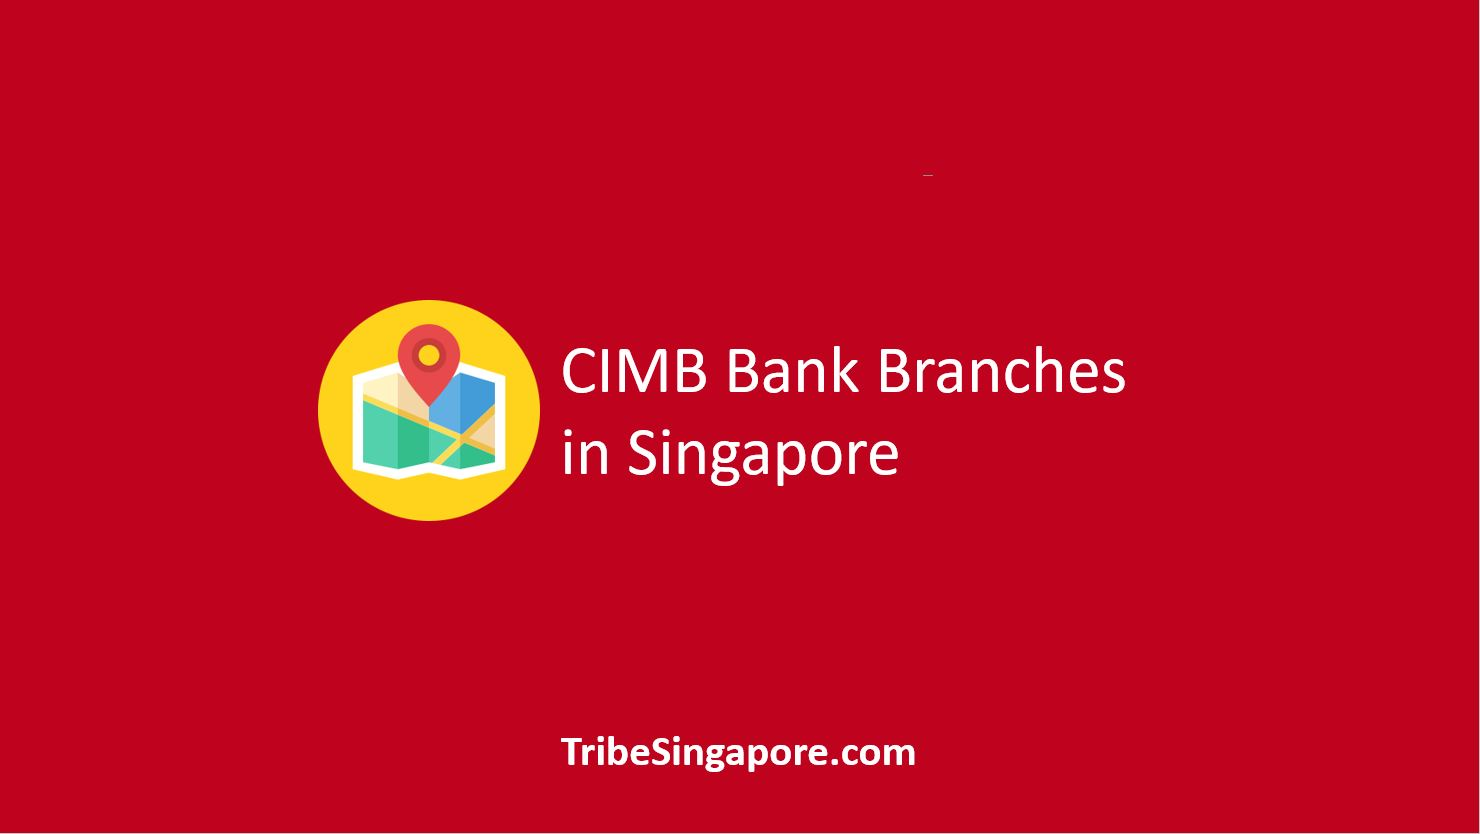 CIMB Bank Branches in Singapore